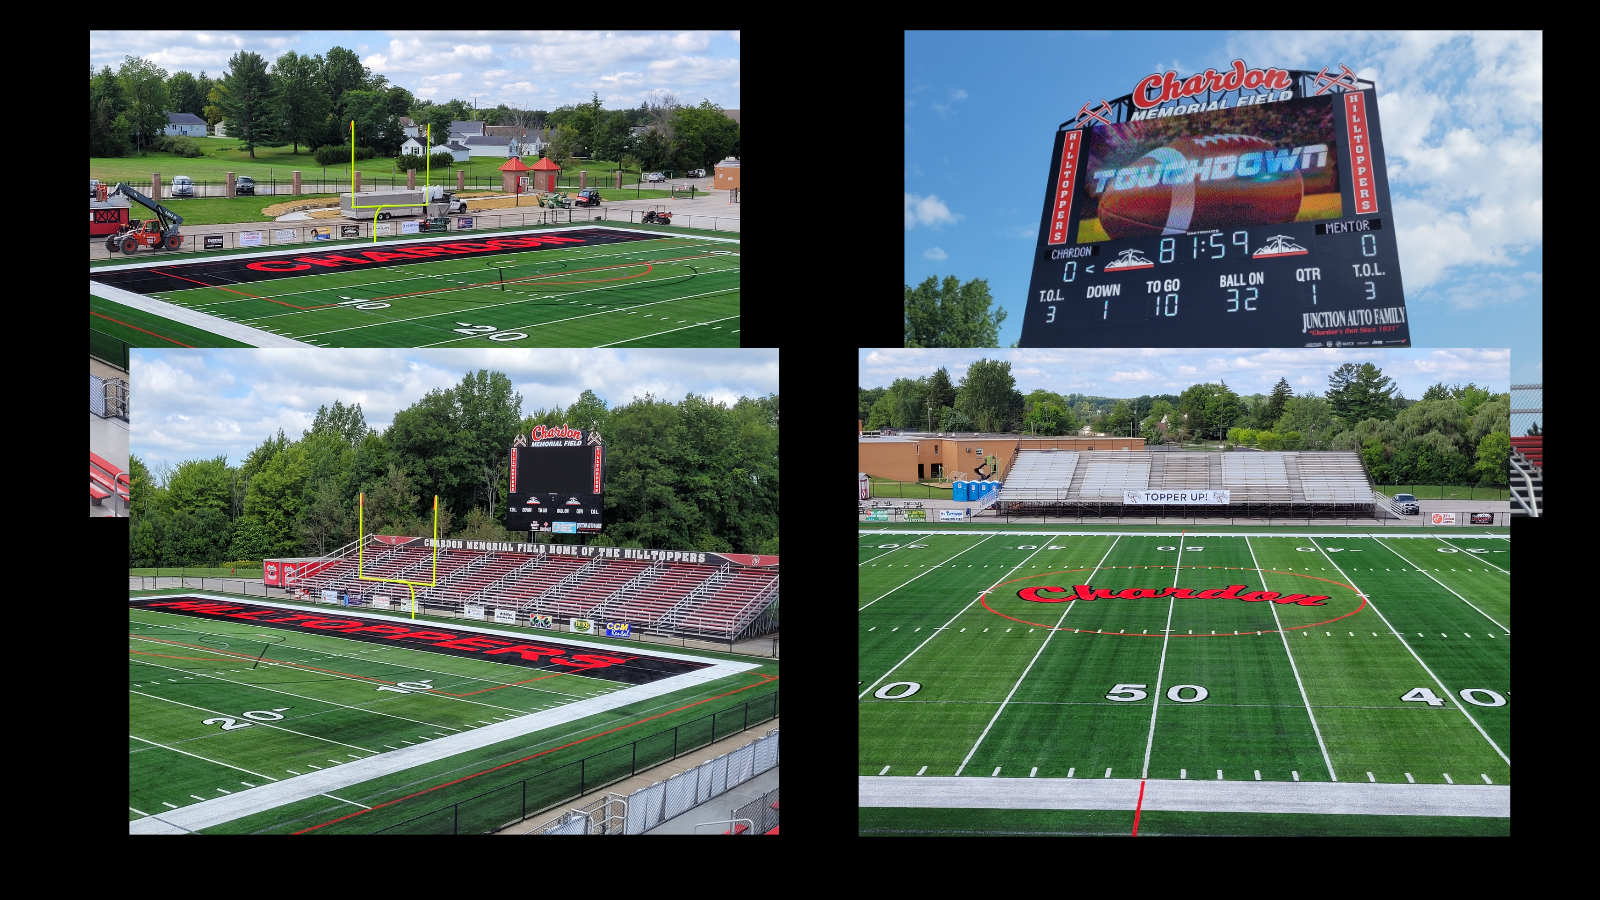 collage photo (4 photos) of Chardon Memorial Field - new turf and scoreboard - summer 2021